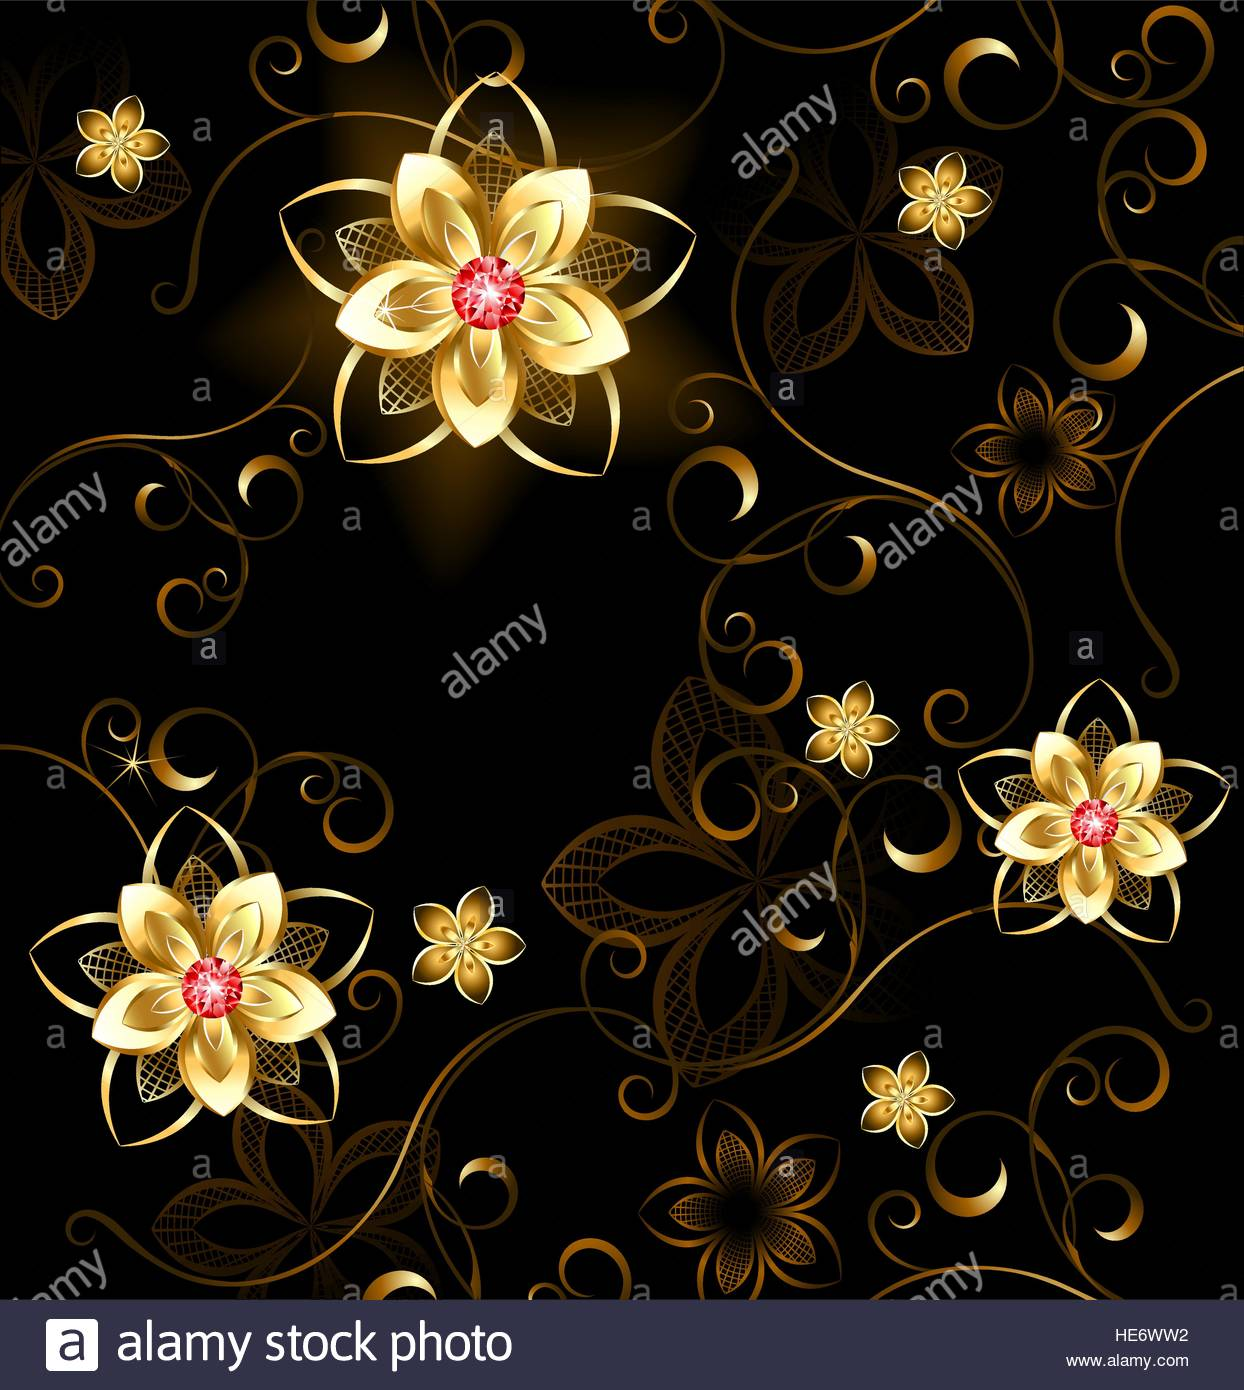 pattern of gilded flowers with bright rubies on a brown background 1244x1390